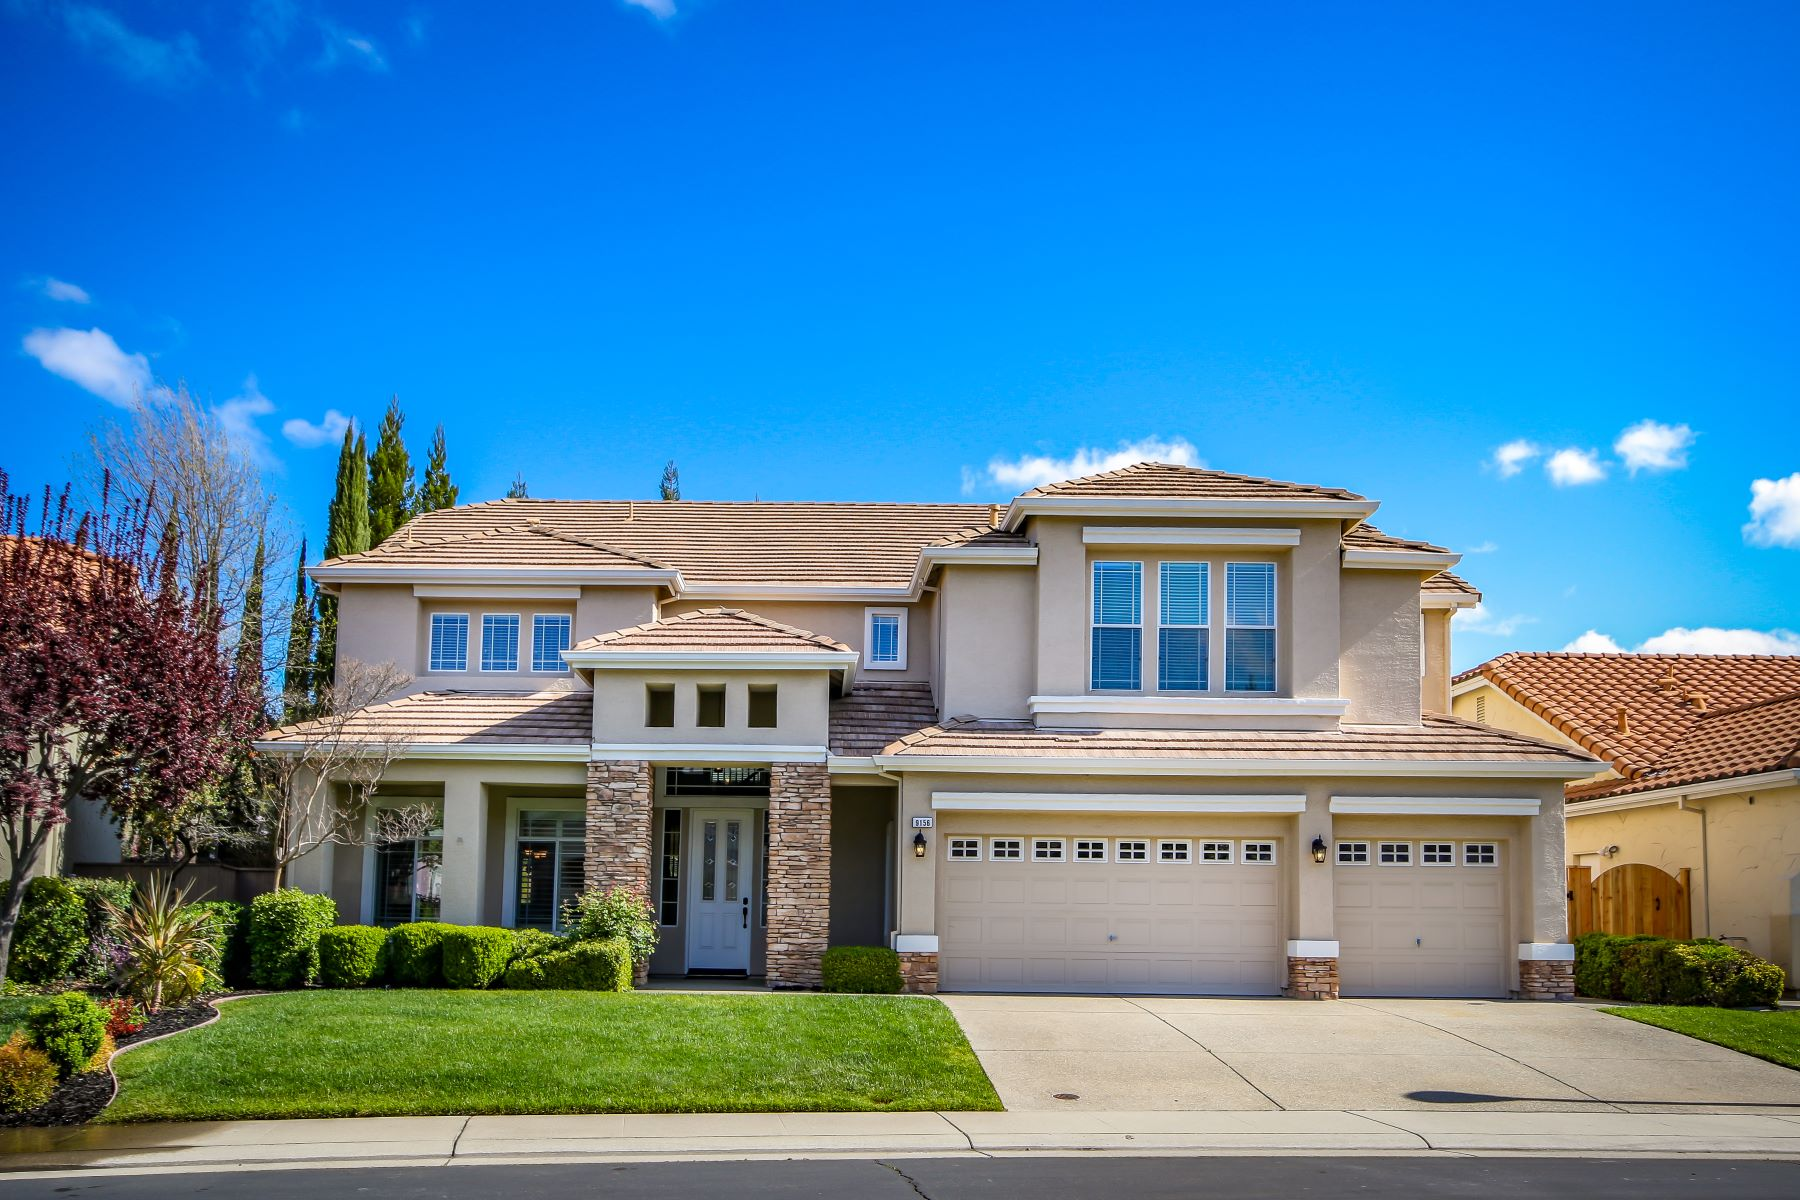 Single Family Homes for Sale at 9156 Moondancer Circle, Roseville, CA 95747 9156 Moondancer Circle Roseville, California 95747 United States